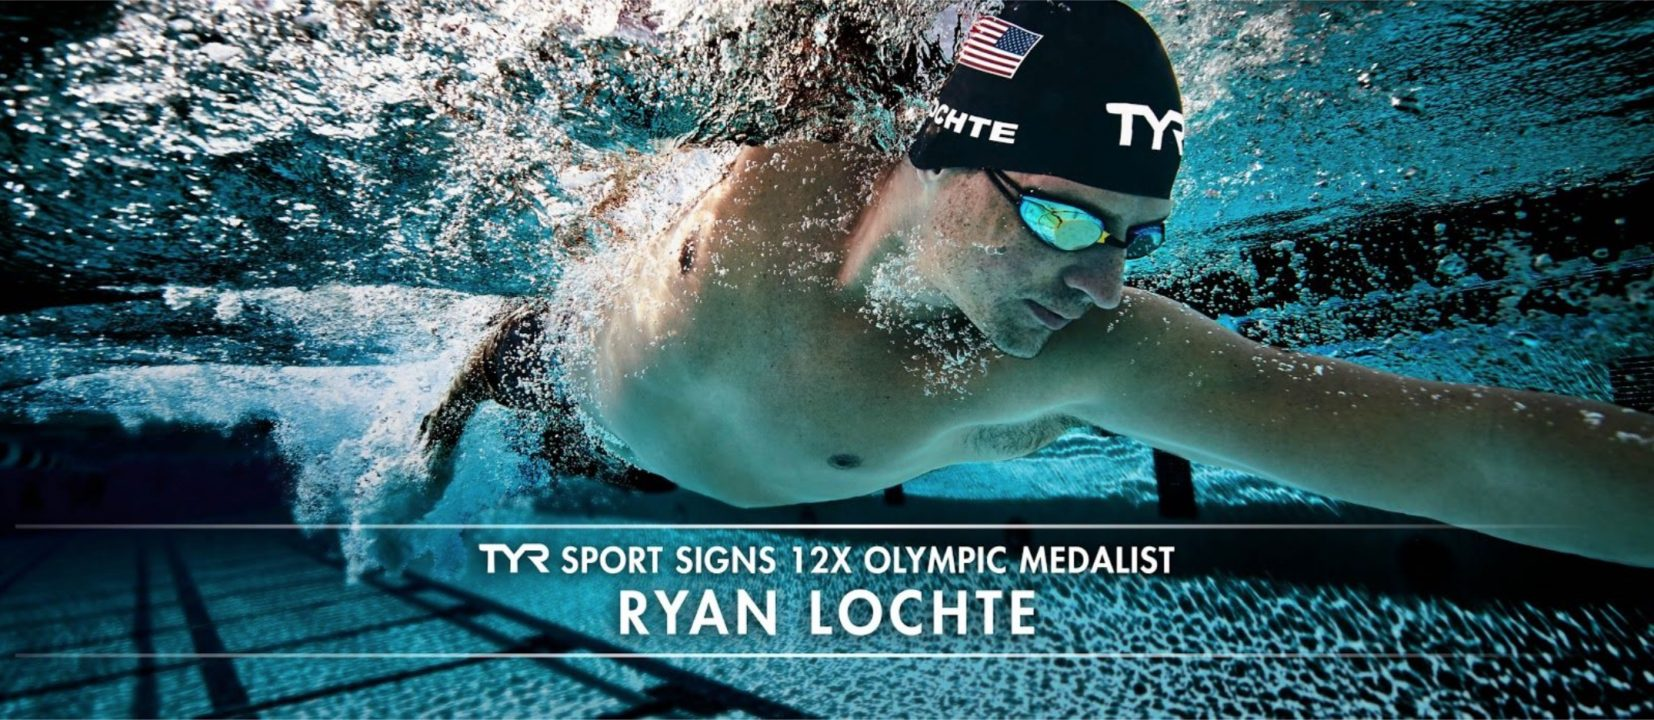 TYR Sport Signs 12-time Olympic Medalist Ryan Lochte